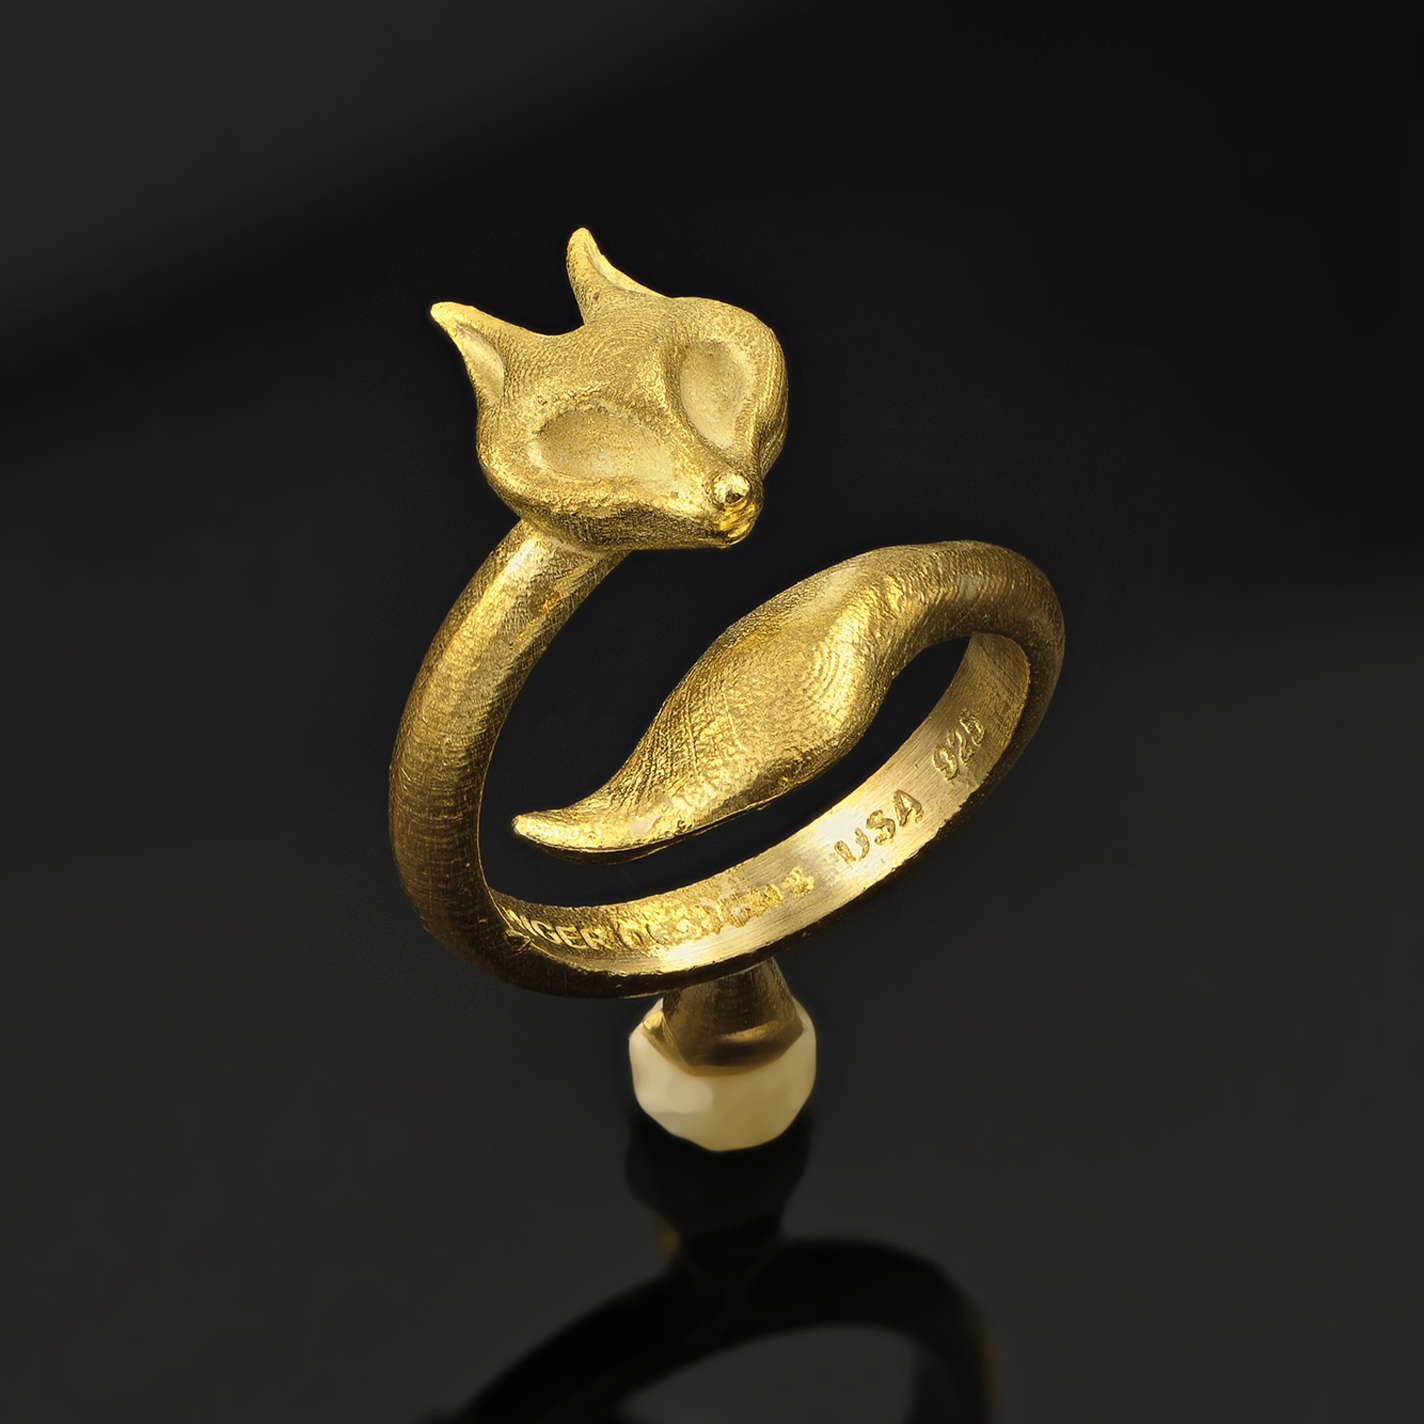 Wax Ring Designs | Monger Designs Jewelry Design Cad Services 3d Printing Direct Rp